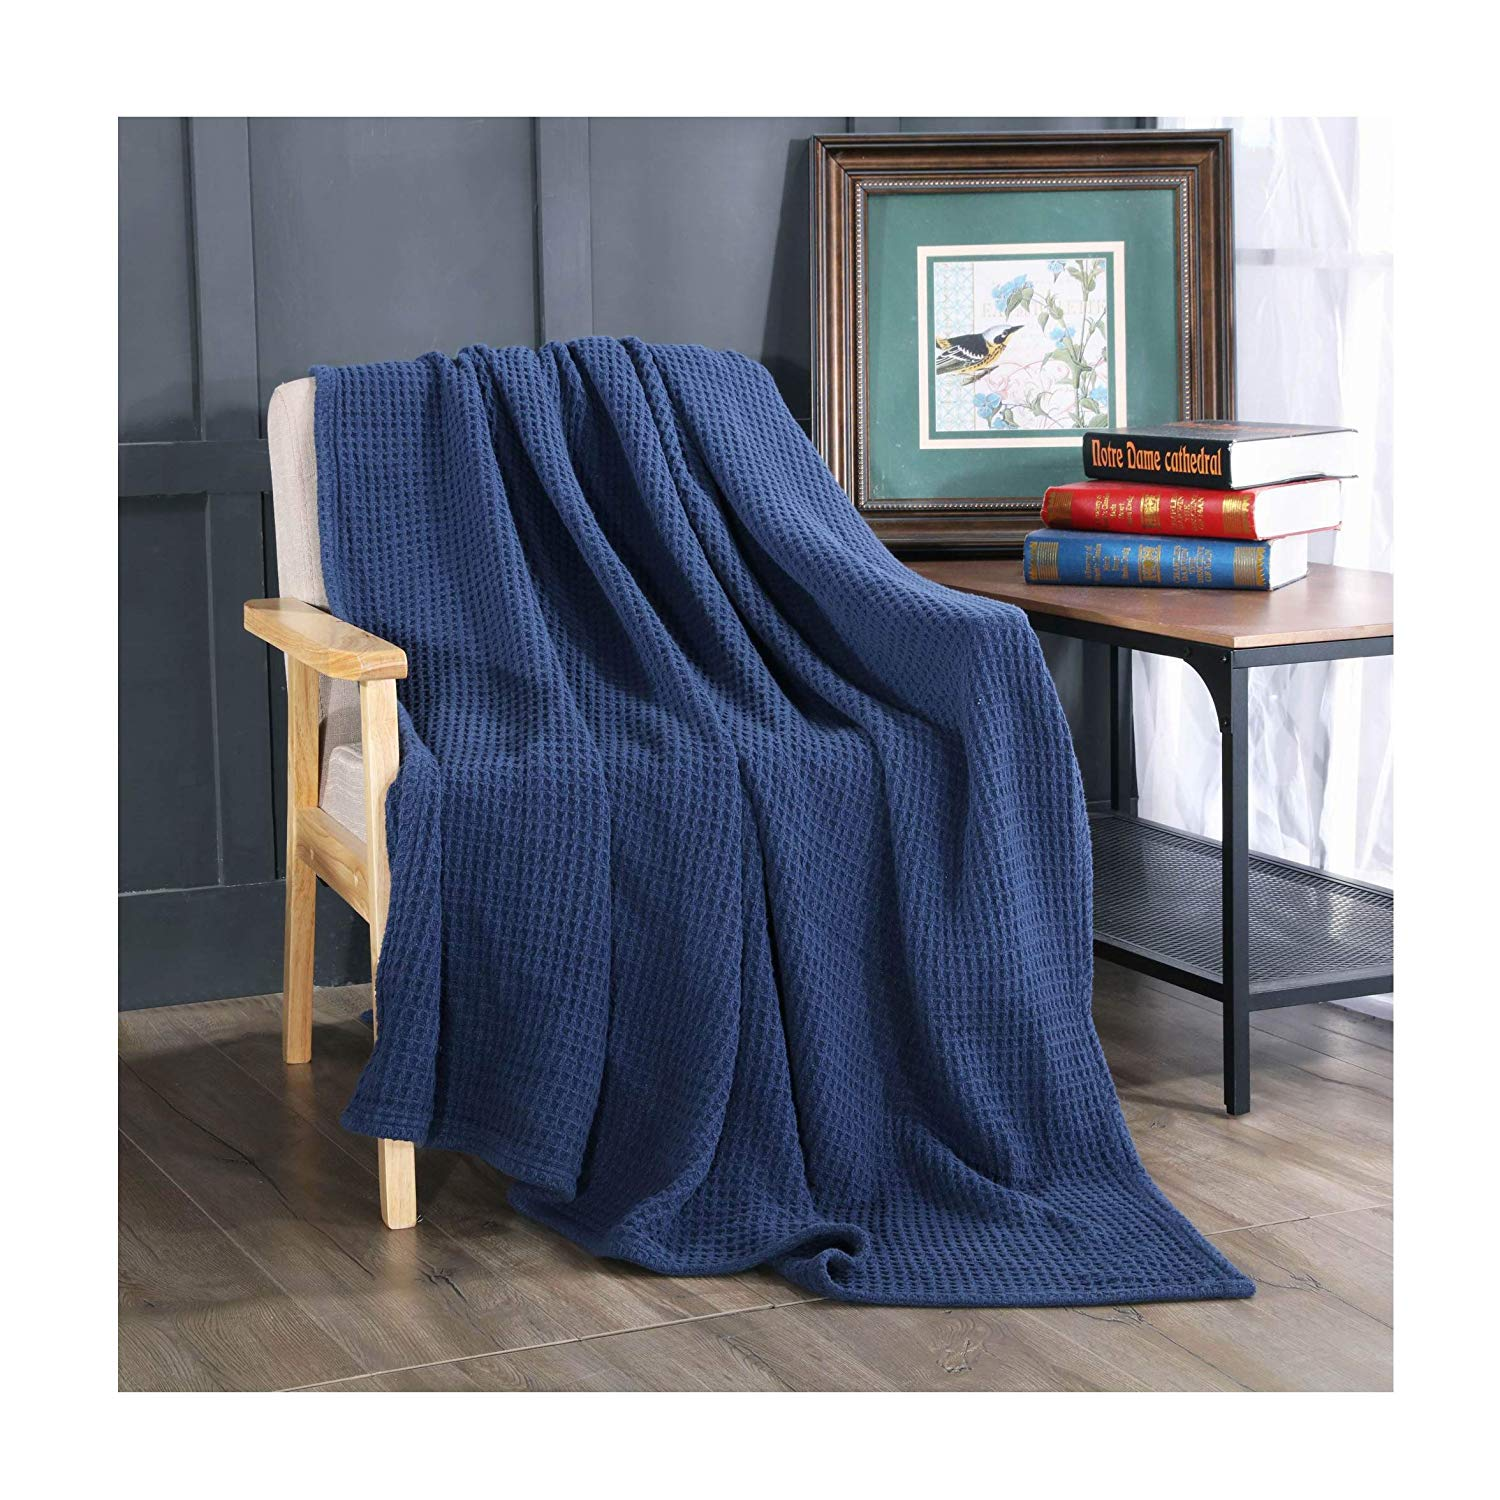 Kasentex Stone-Washed Ultra Soft Throw Blanket 100% Cotton and Solid Color